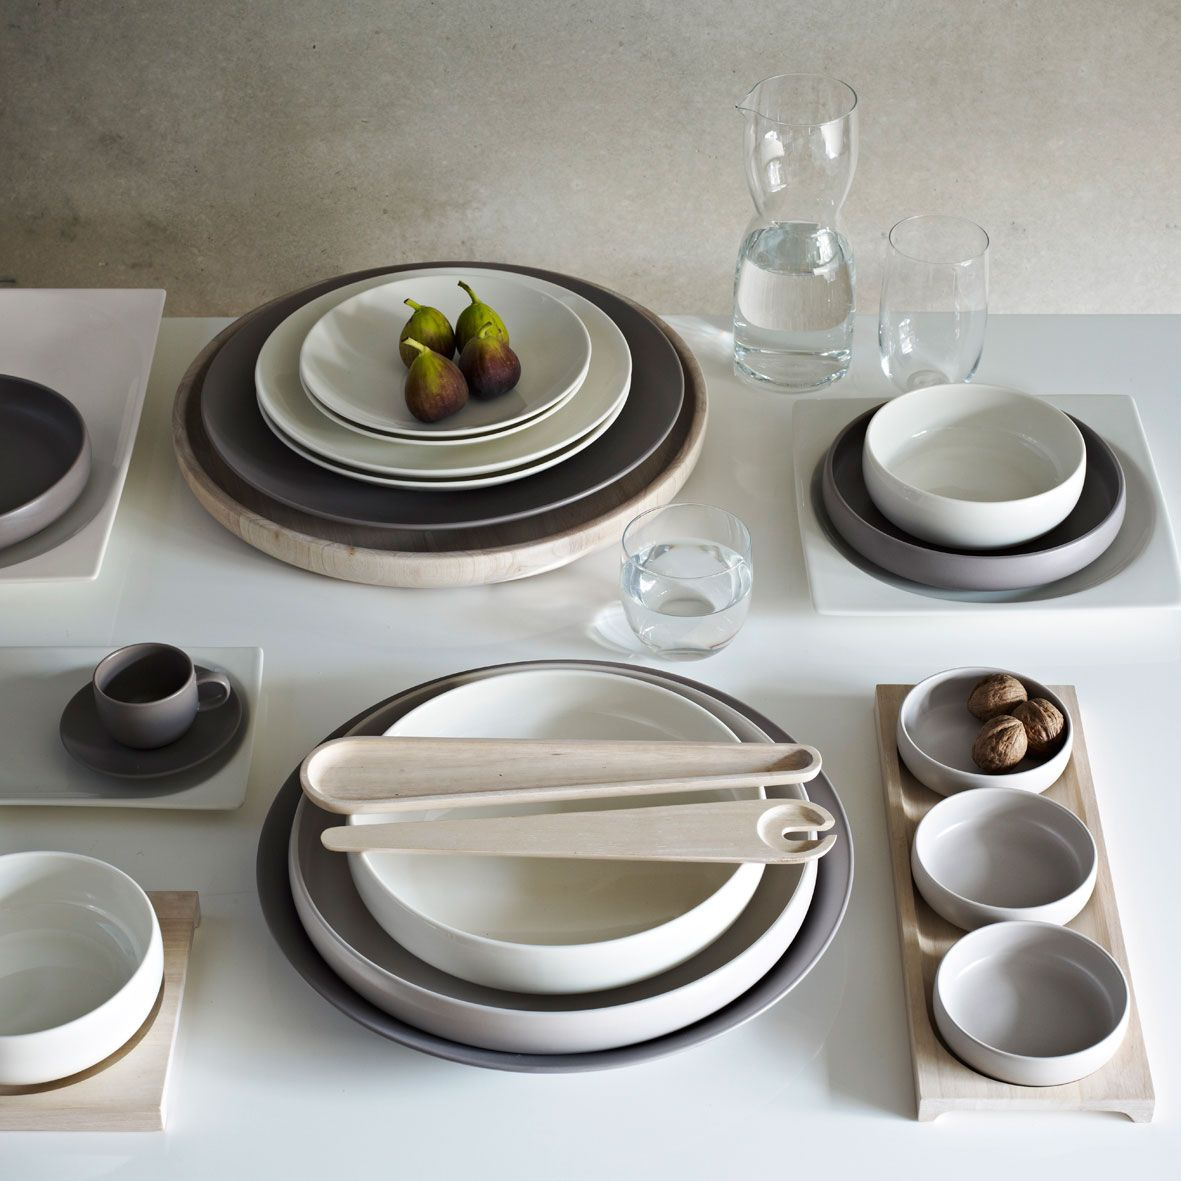 Japan Küchenutensilien Mode From Royal Doulton Interior Pinterest Geschirr